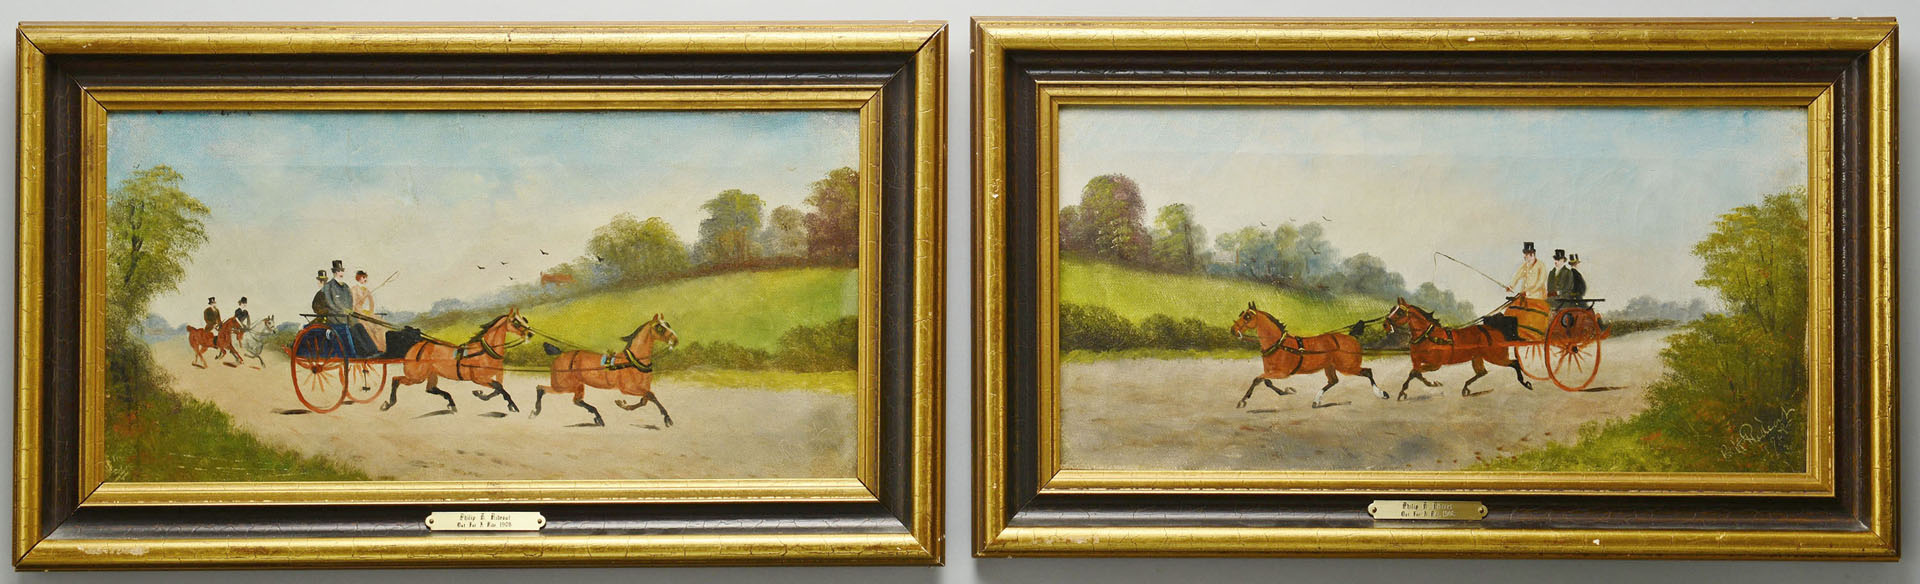 Philip Rideout, Pair of Carriage Scenes, oil on canvas